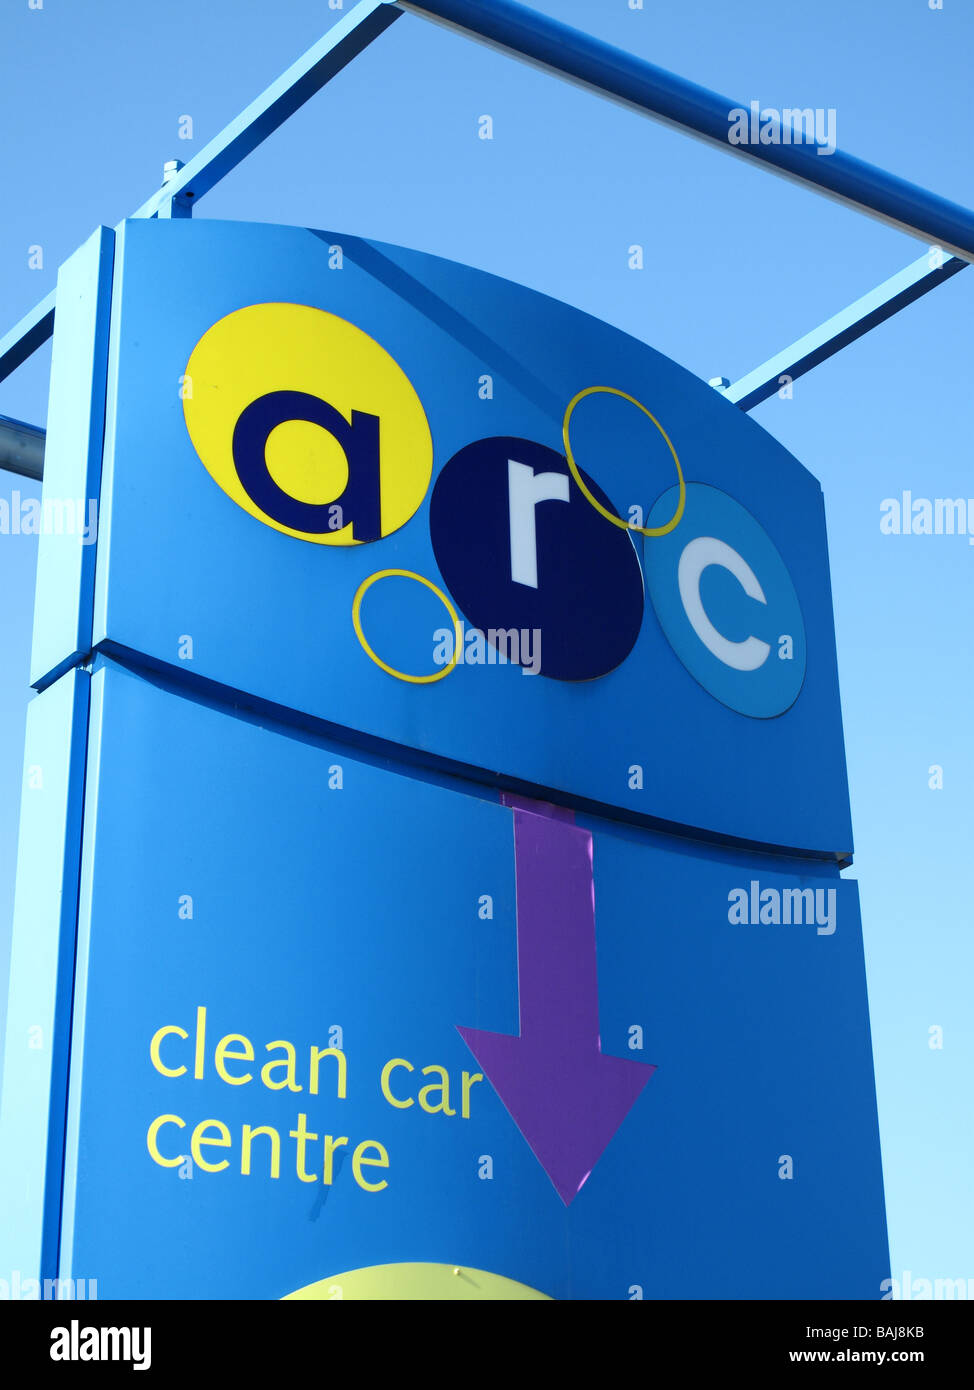 An Arc car wash centre in a U.K. city. - Stock Image